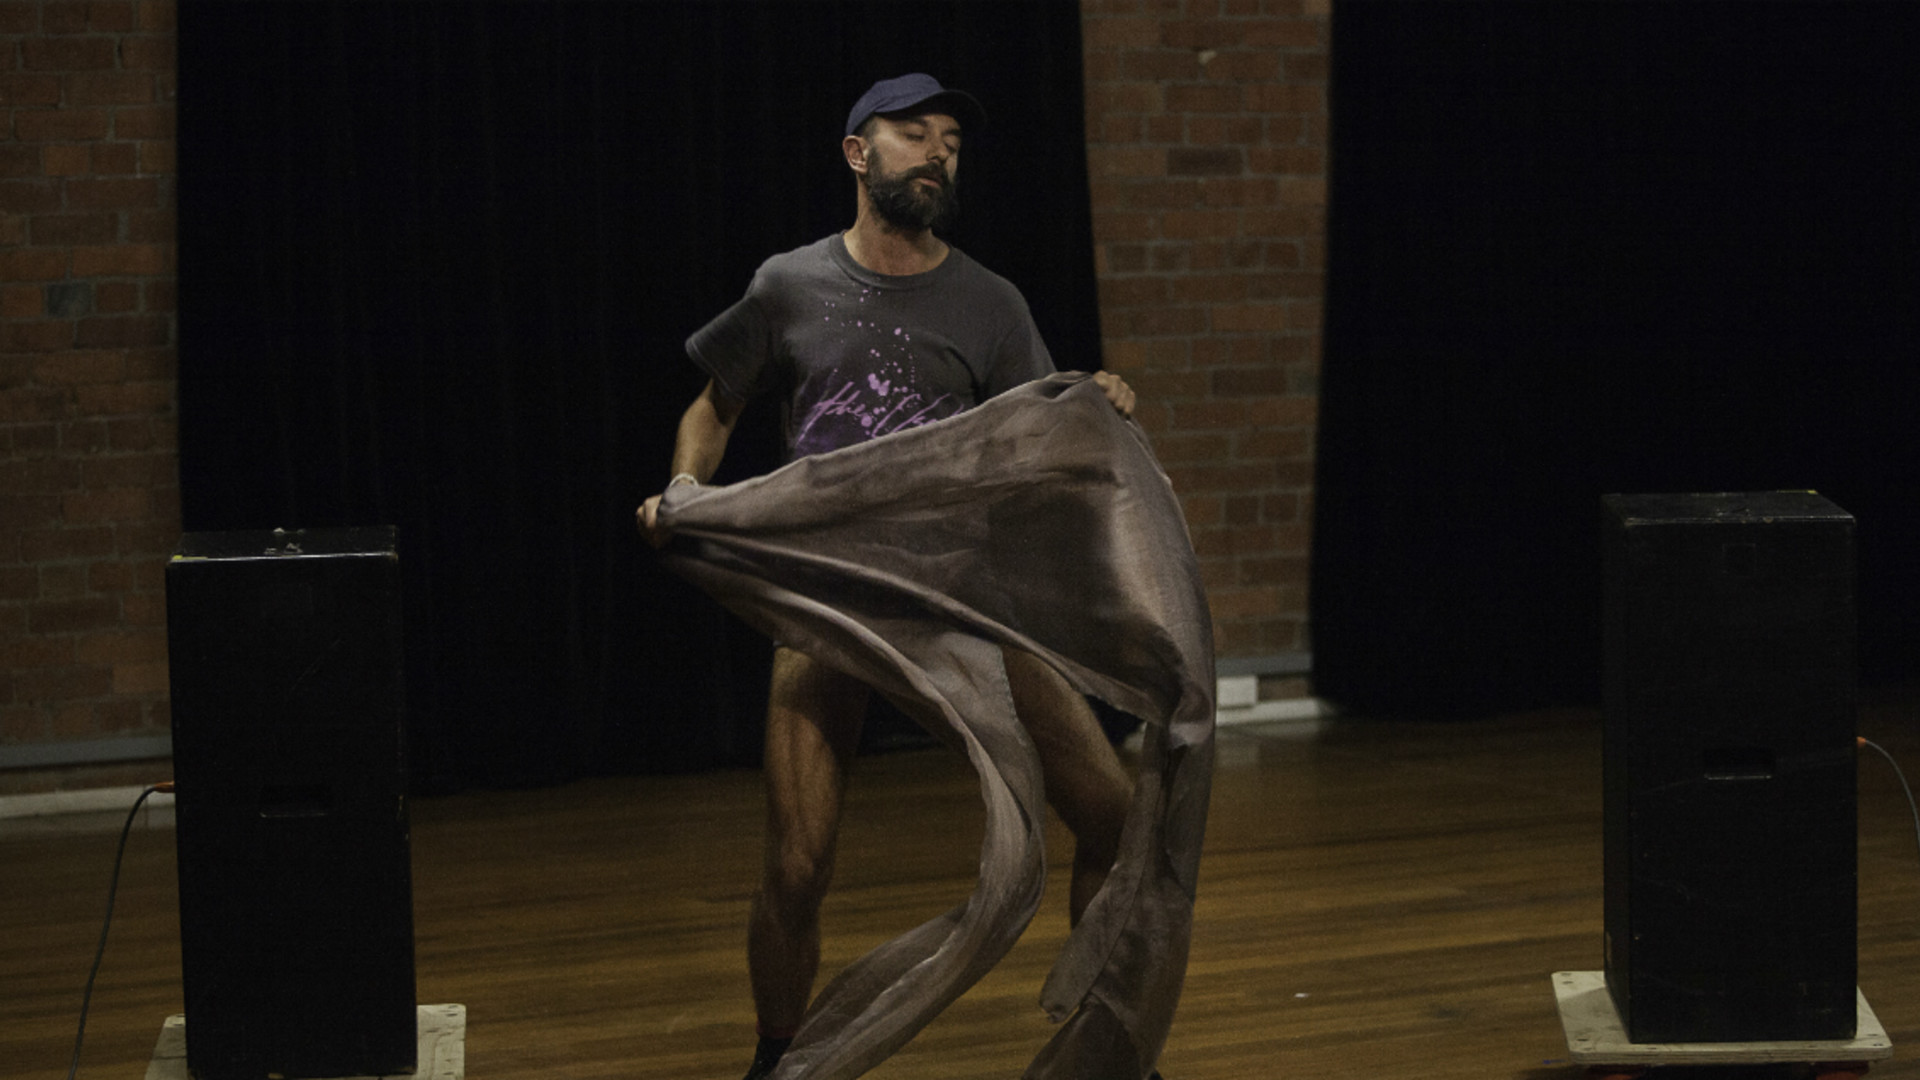 A man with a beard and black t-shirt dancers with eyes closed holding grey material between two black speaks on the wooden floor